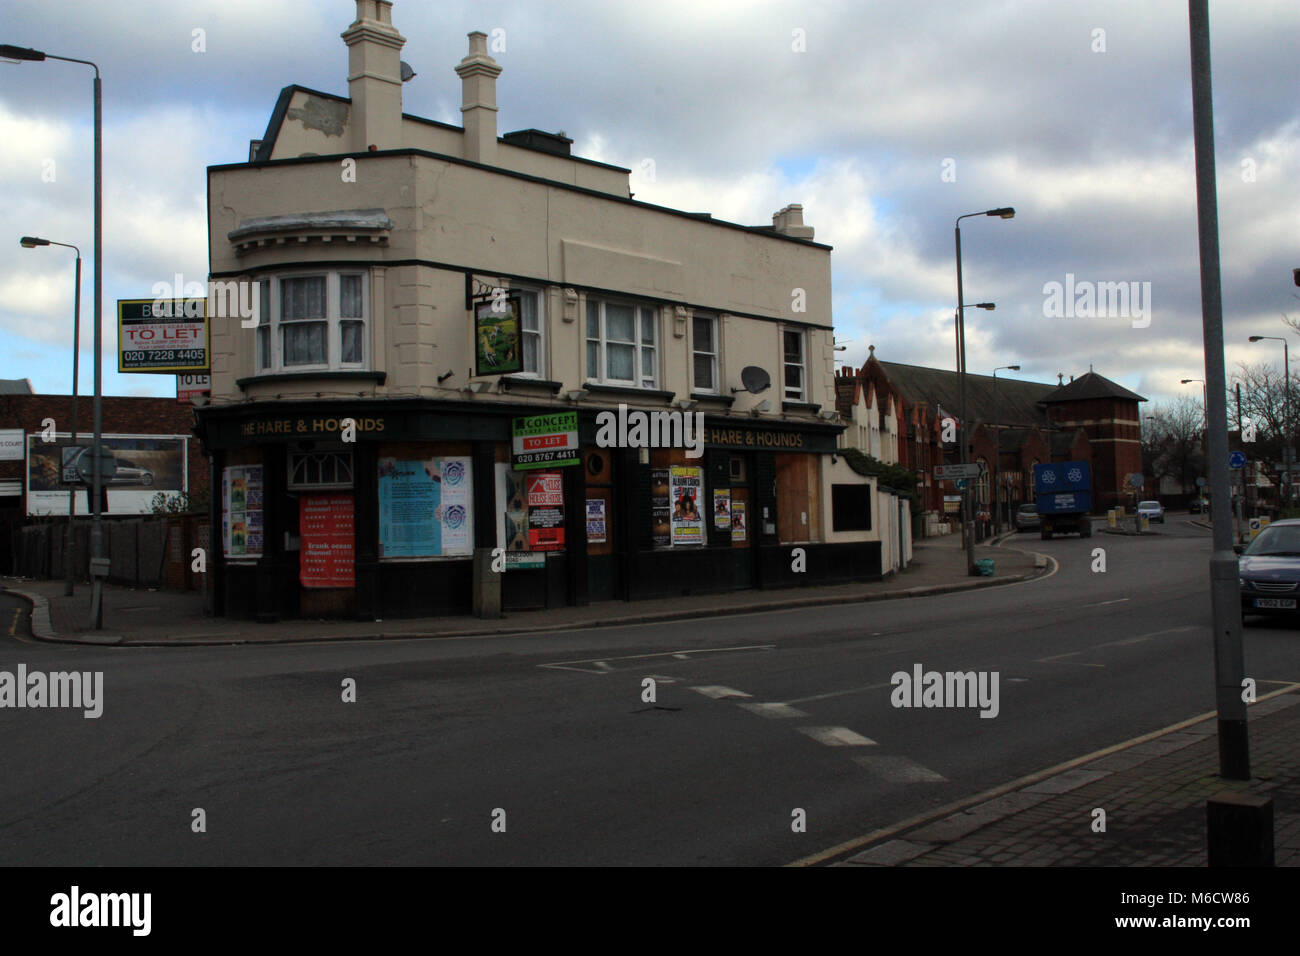 The Hare & Hounds Public House, Summerstown, Tooting. Now a wood flooring warehouse. London, England, UK; - Stock Image